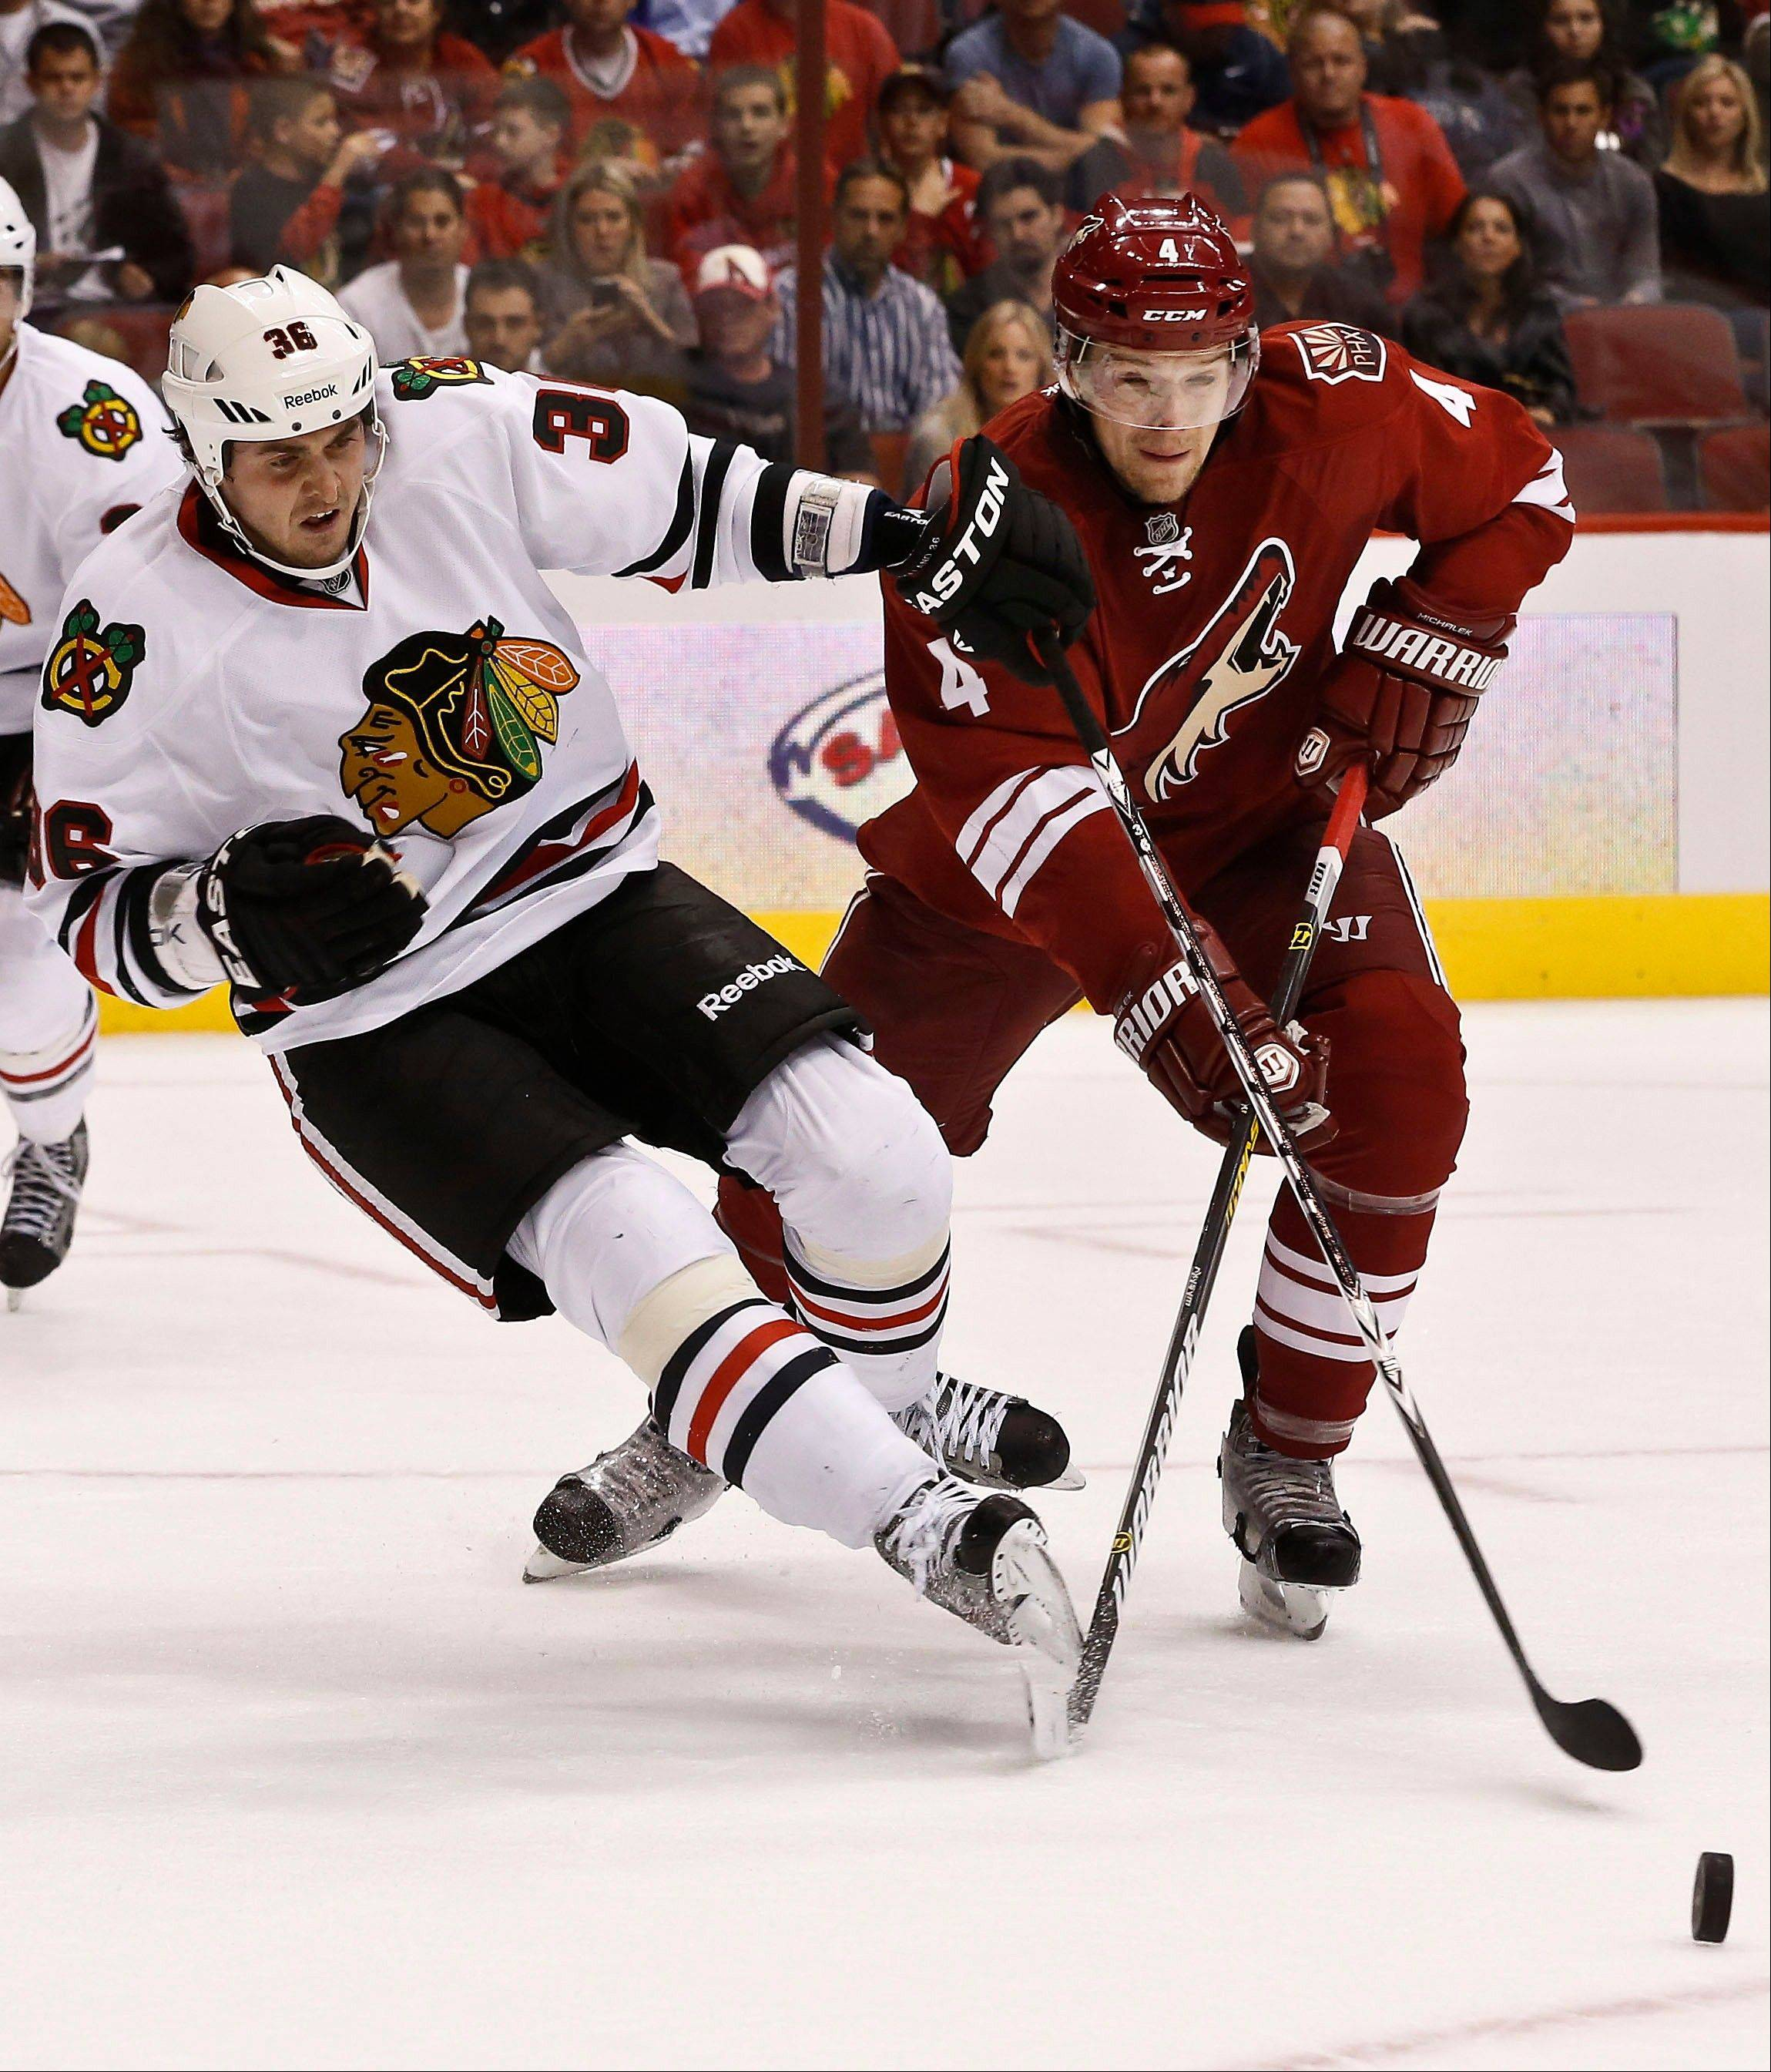 Phoenix Coyotes' Zbynek Michalek (4), of the Czech Republic, gets called for tripping on Chicago Blackhawks' Dave Bolland (36) during the first period in an NHL hockey game Thursday, Feb. 7, 2013, in Glendale, Ariz.